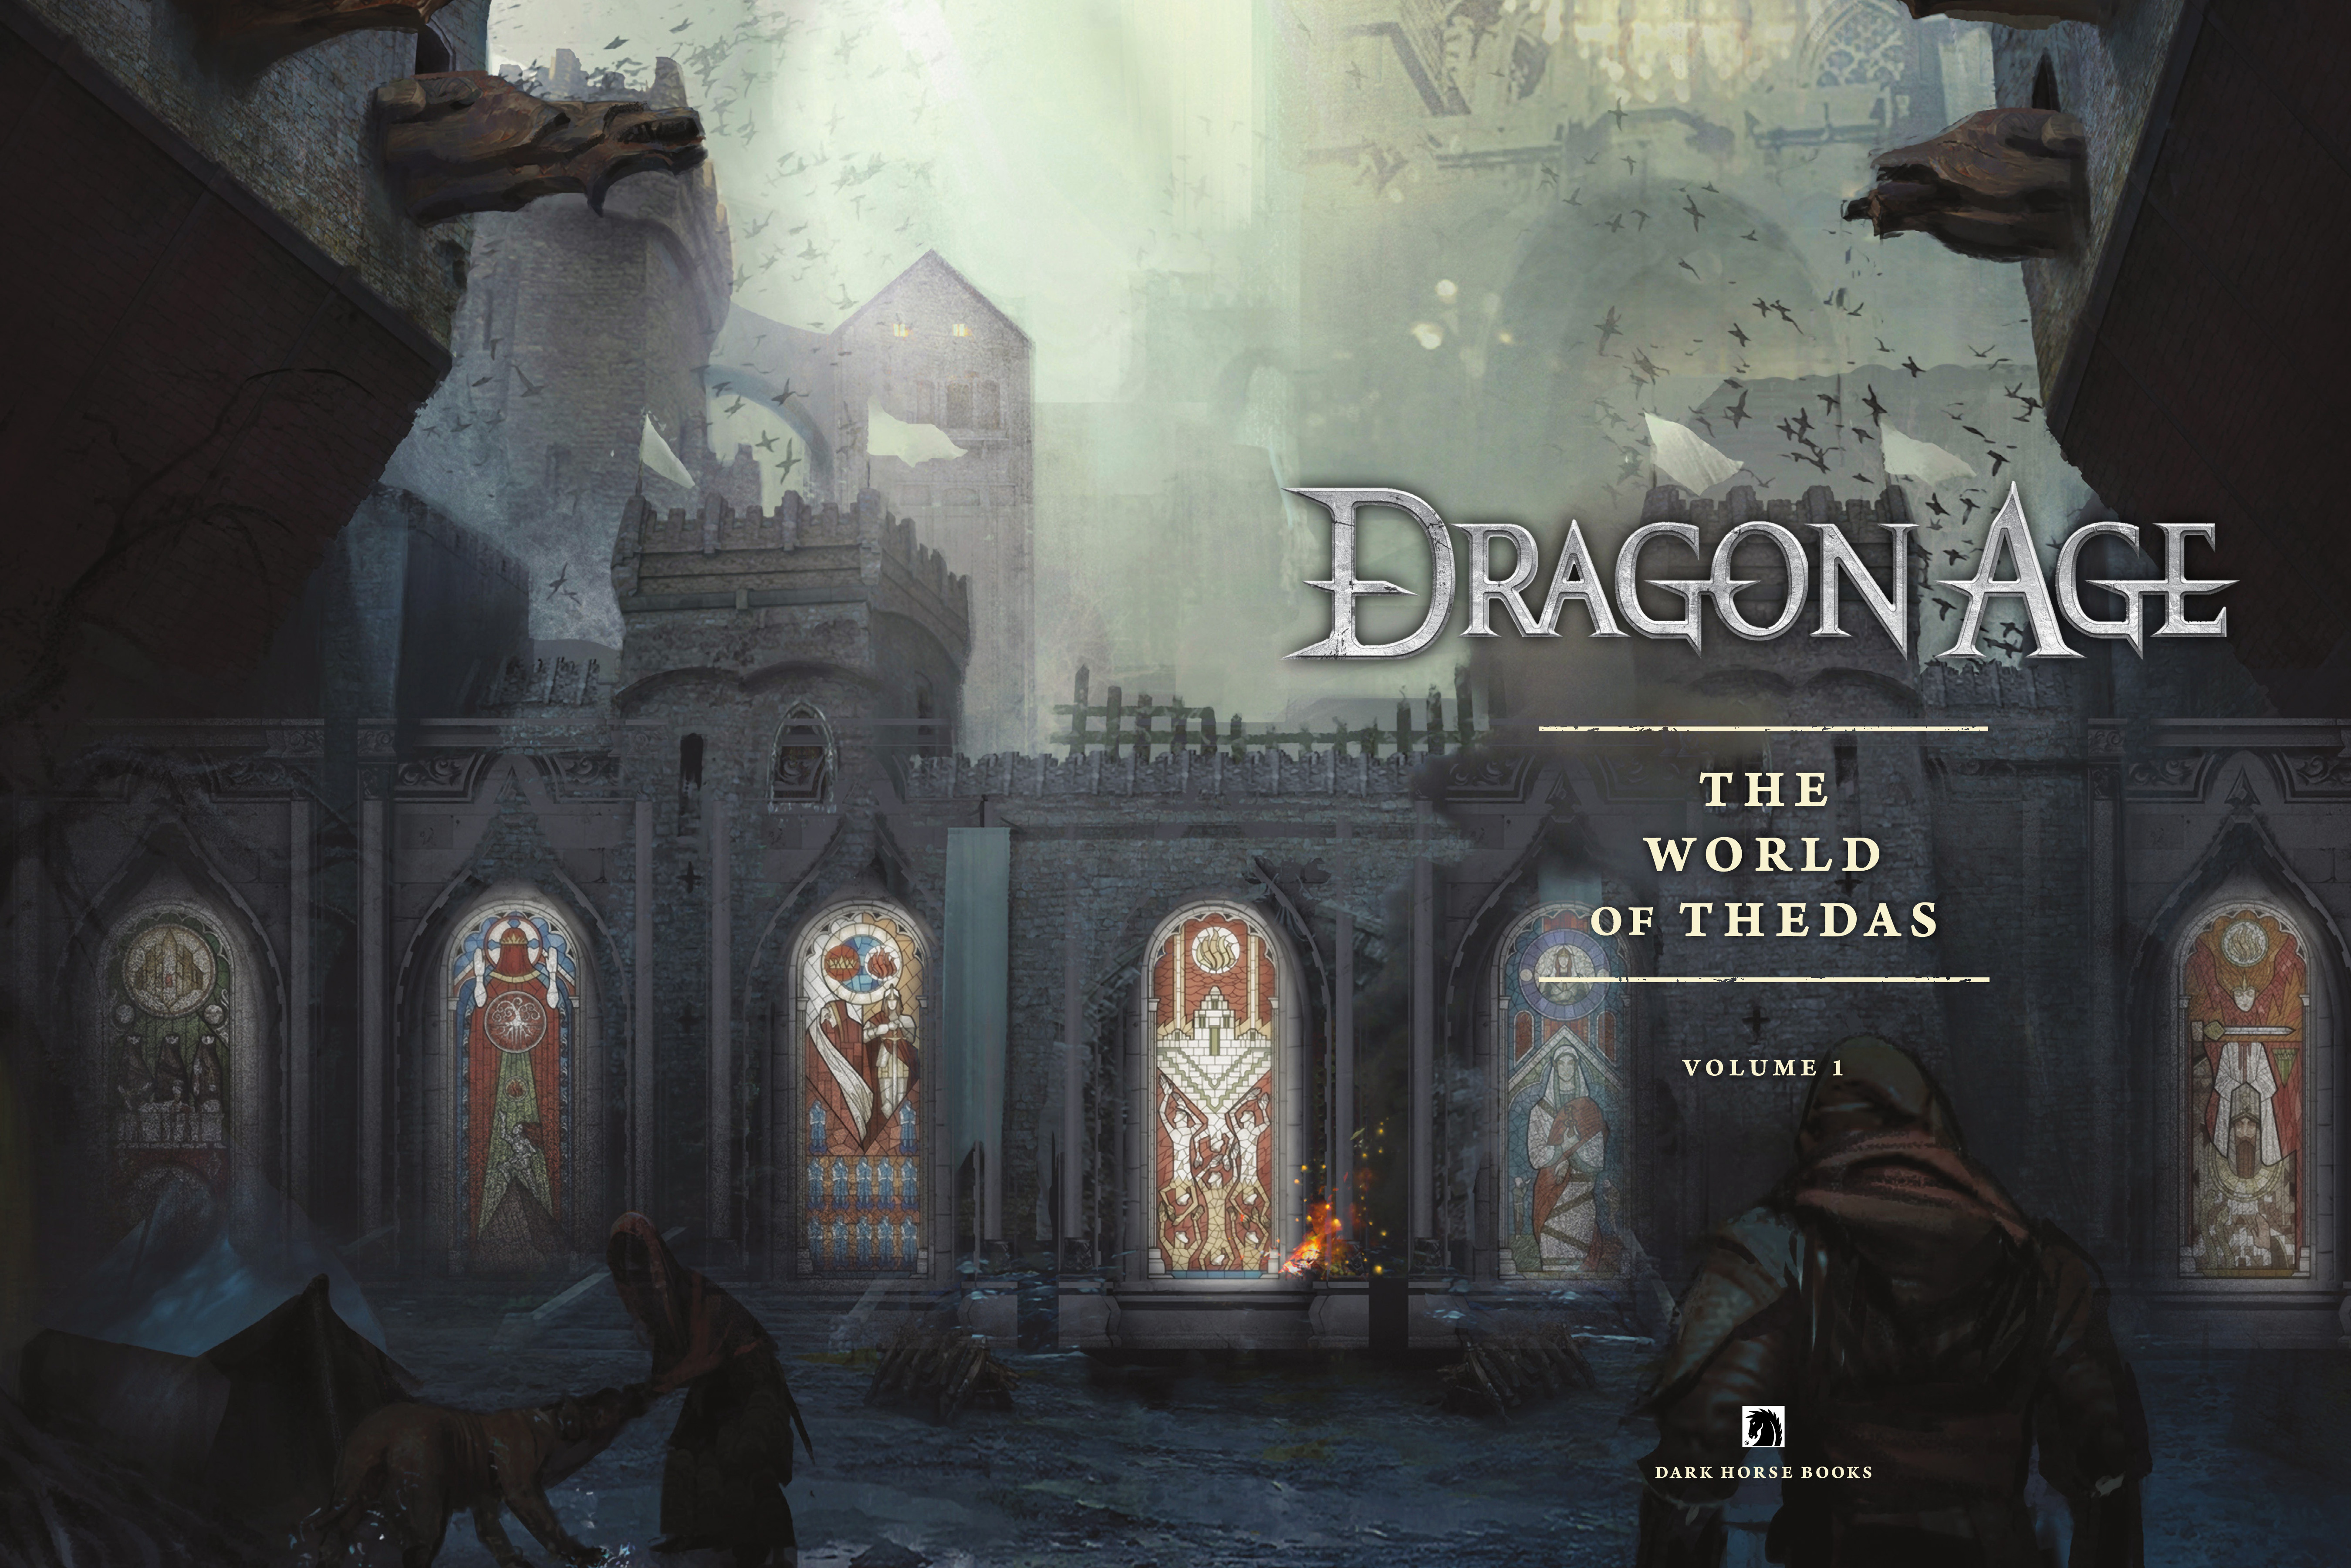 Read online Dragon Age: The World of Thedas comic -  Issue # TPB 1 - 4